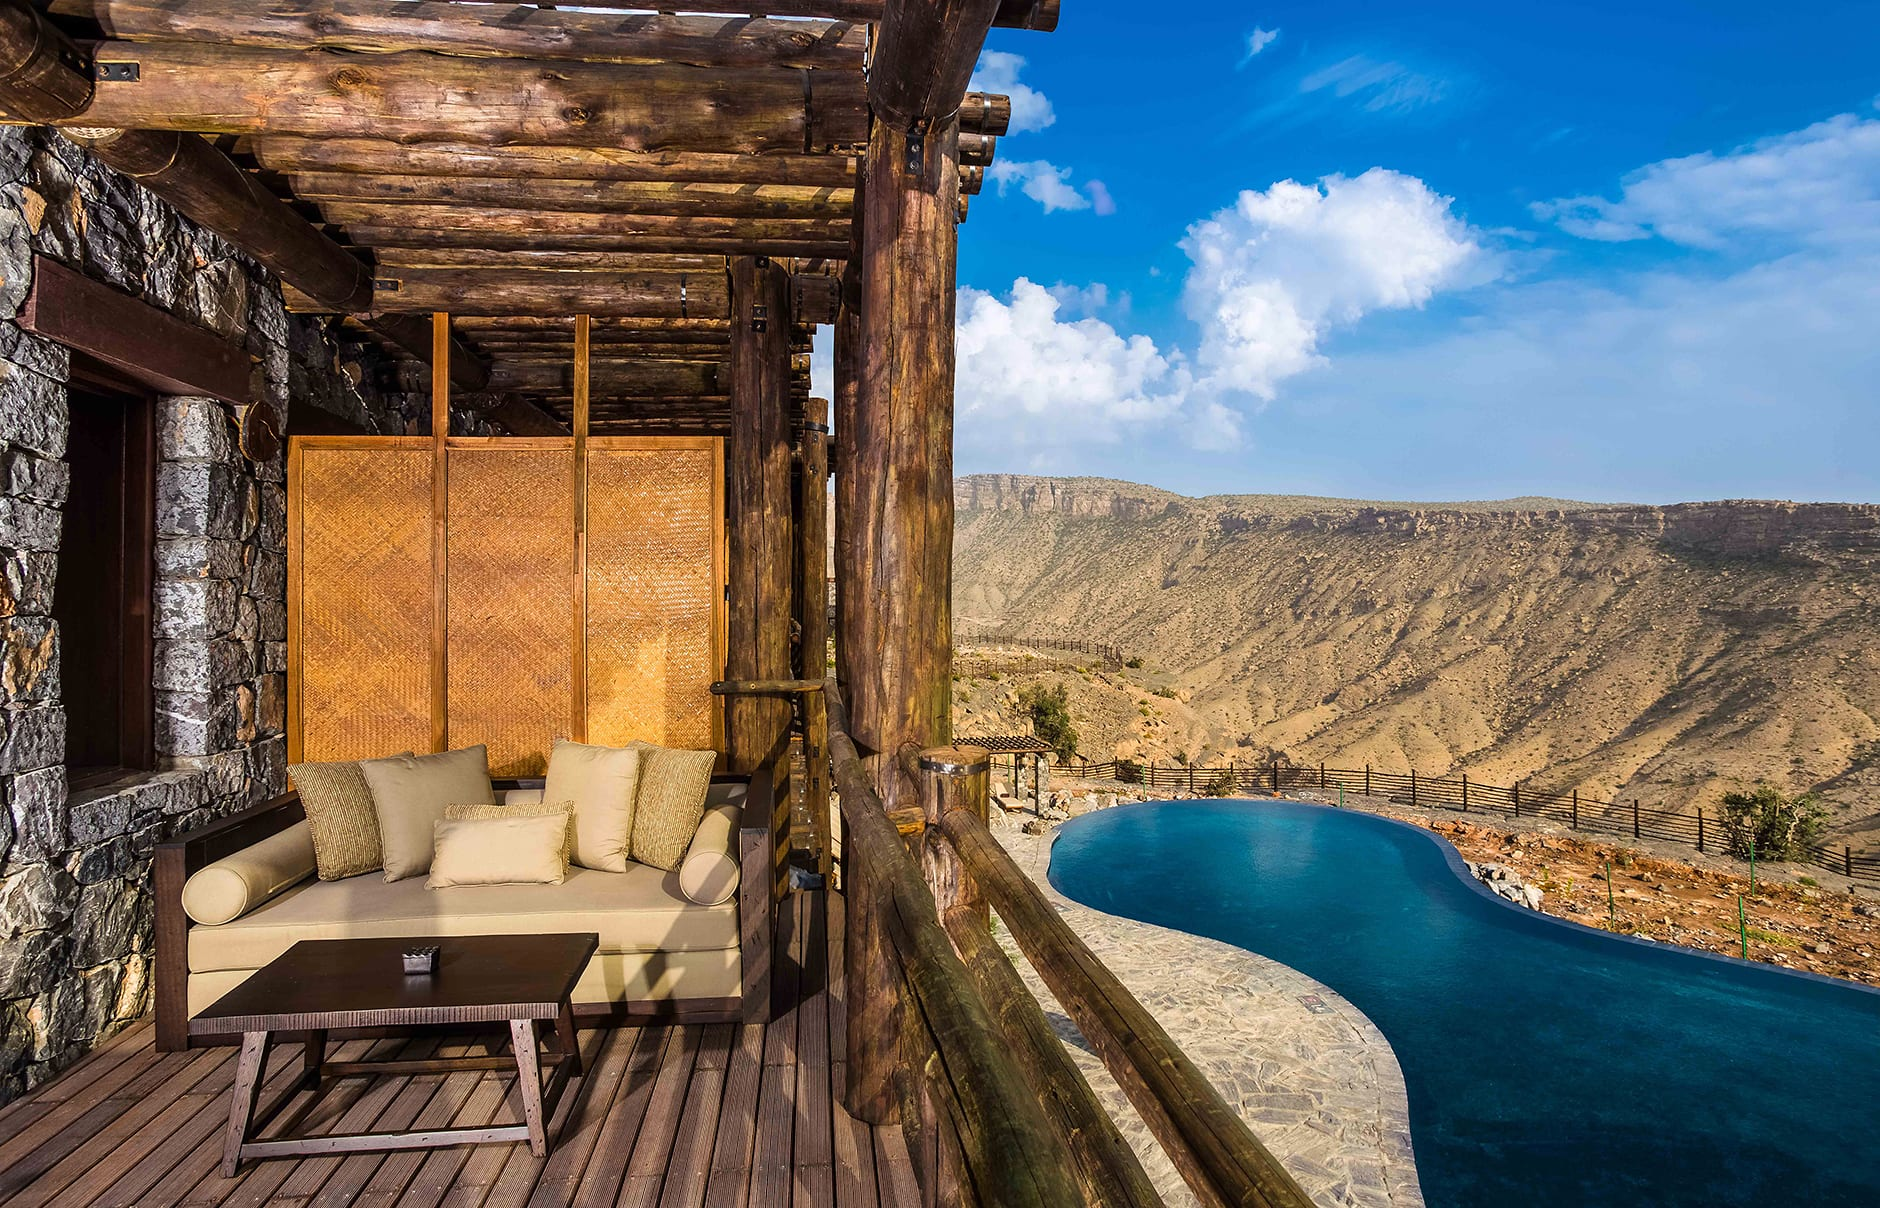 Alila jabal akhdar luxury hotels travelplusstyle for Hotel luxe france